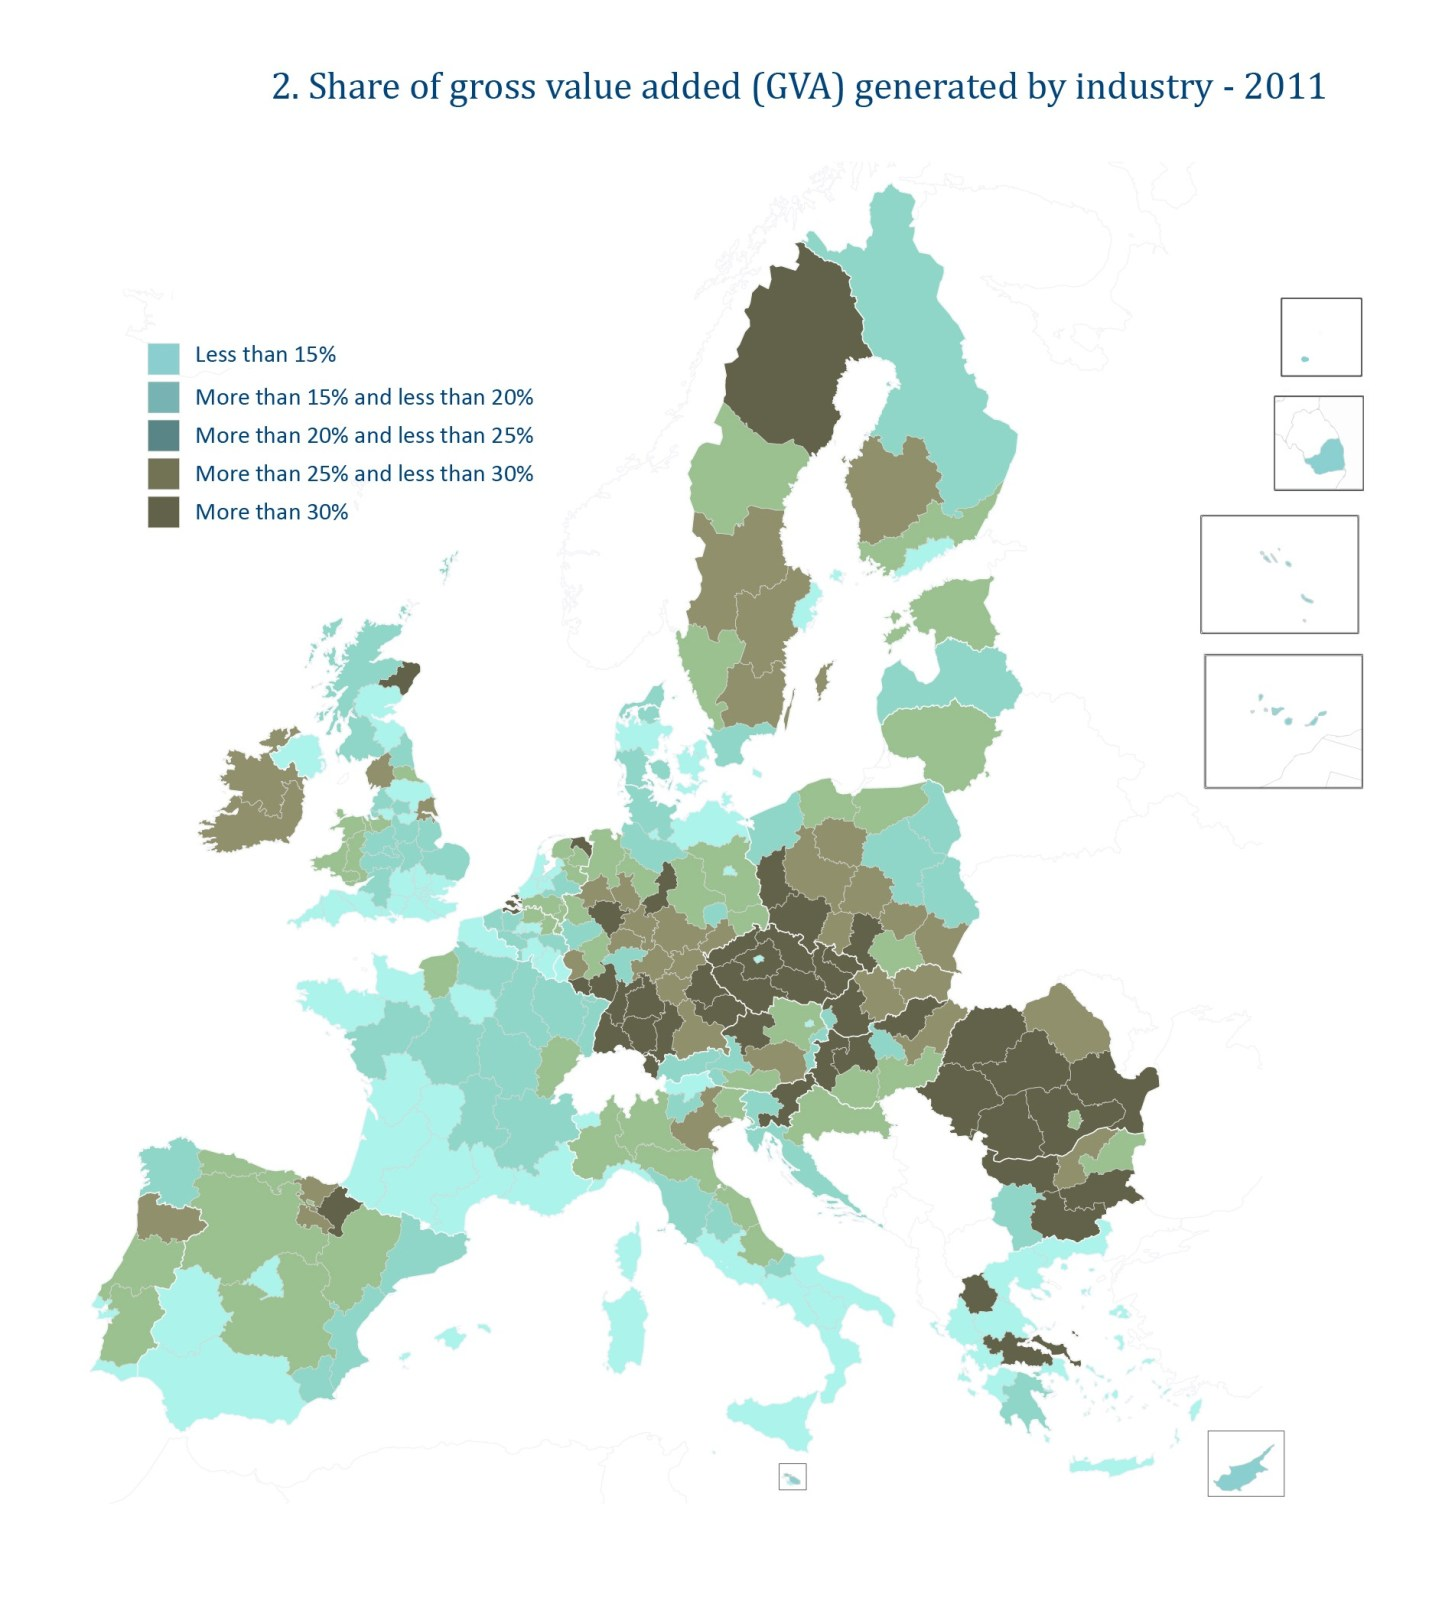 Share of gross value added (GVA) generated by industry - 2011